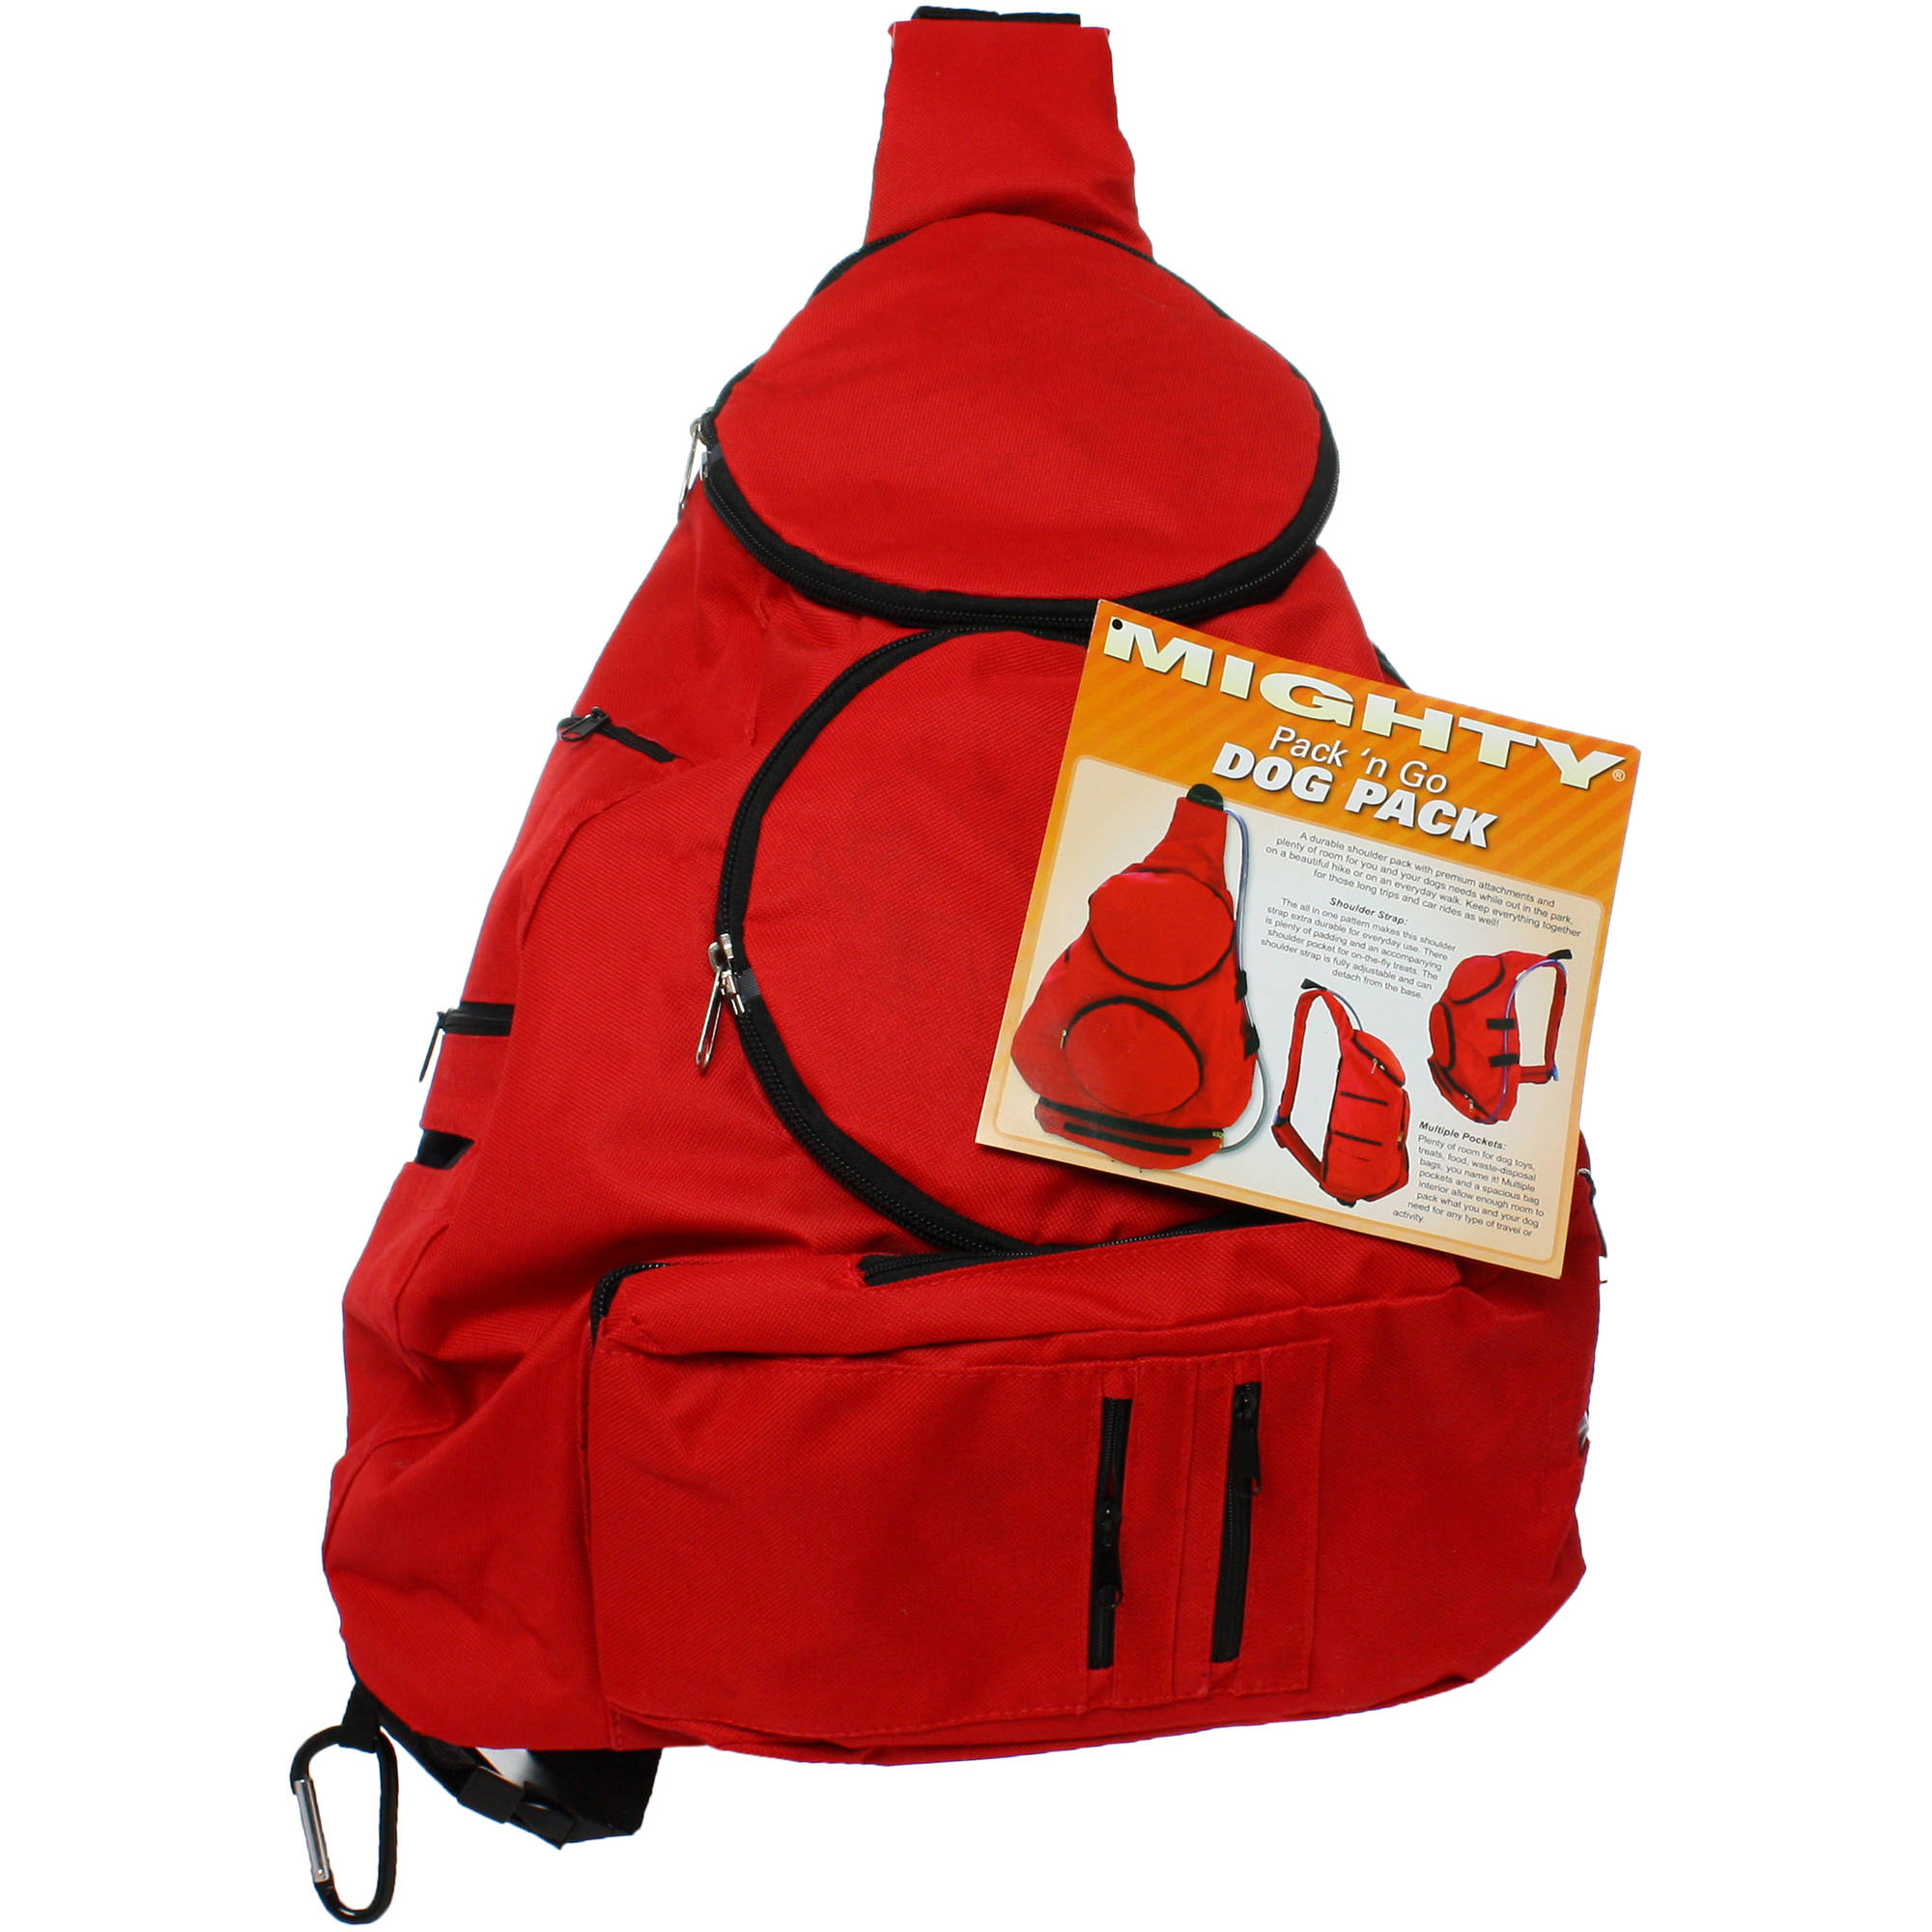 Mighty Pack 'n Go Dog Pack, Red